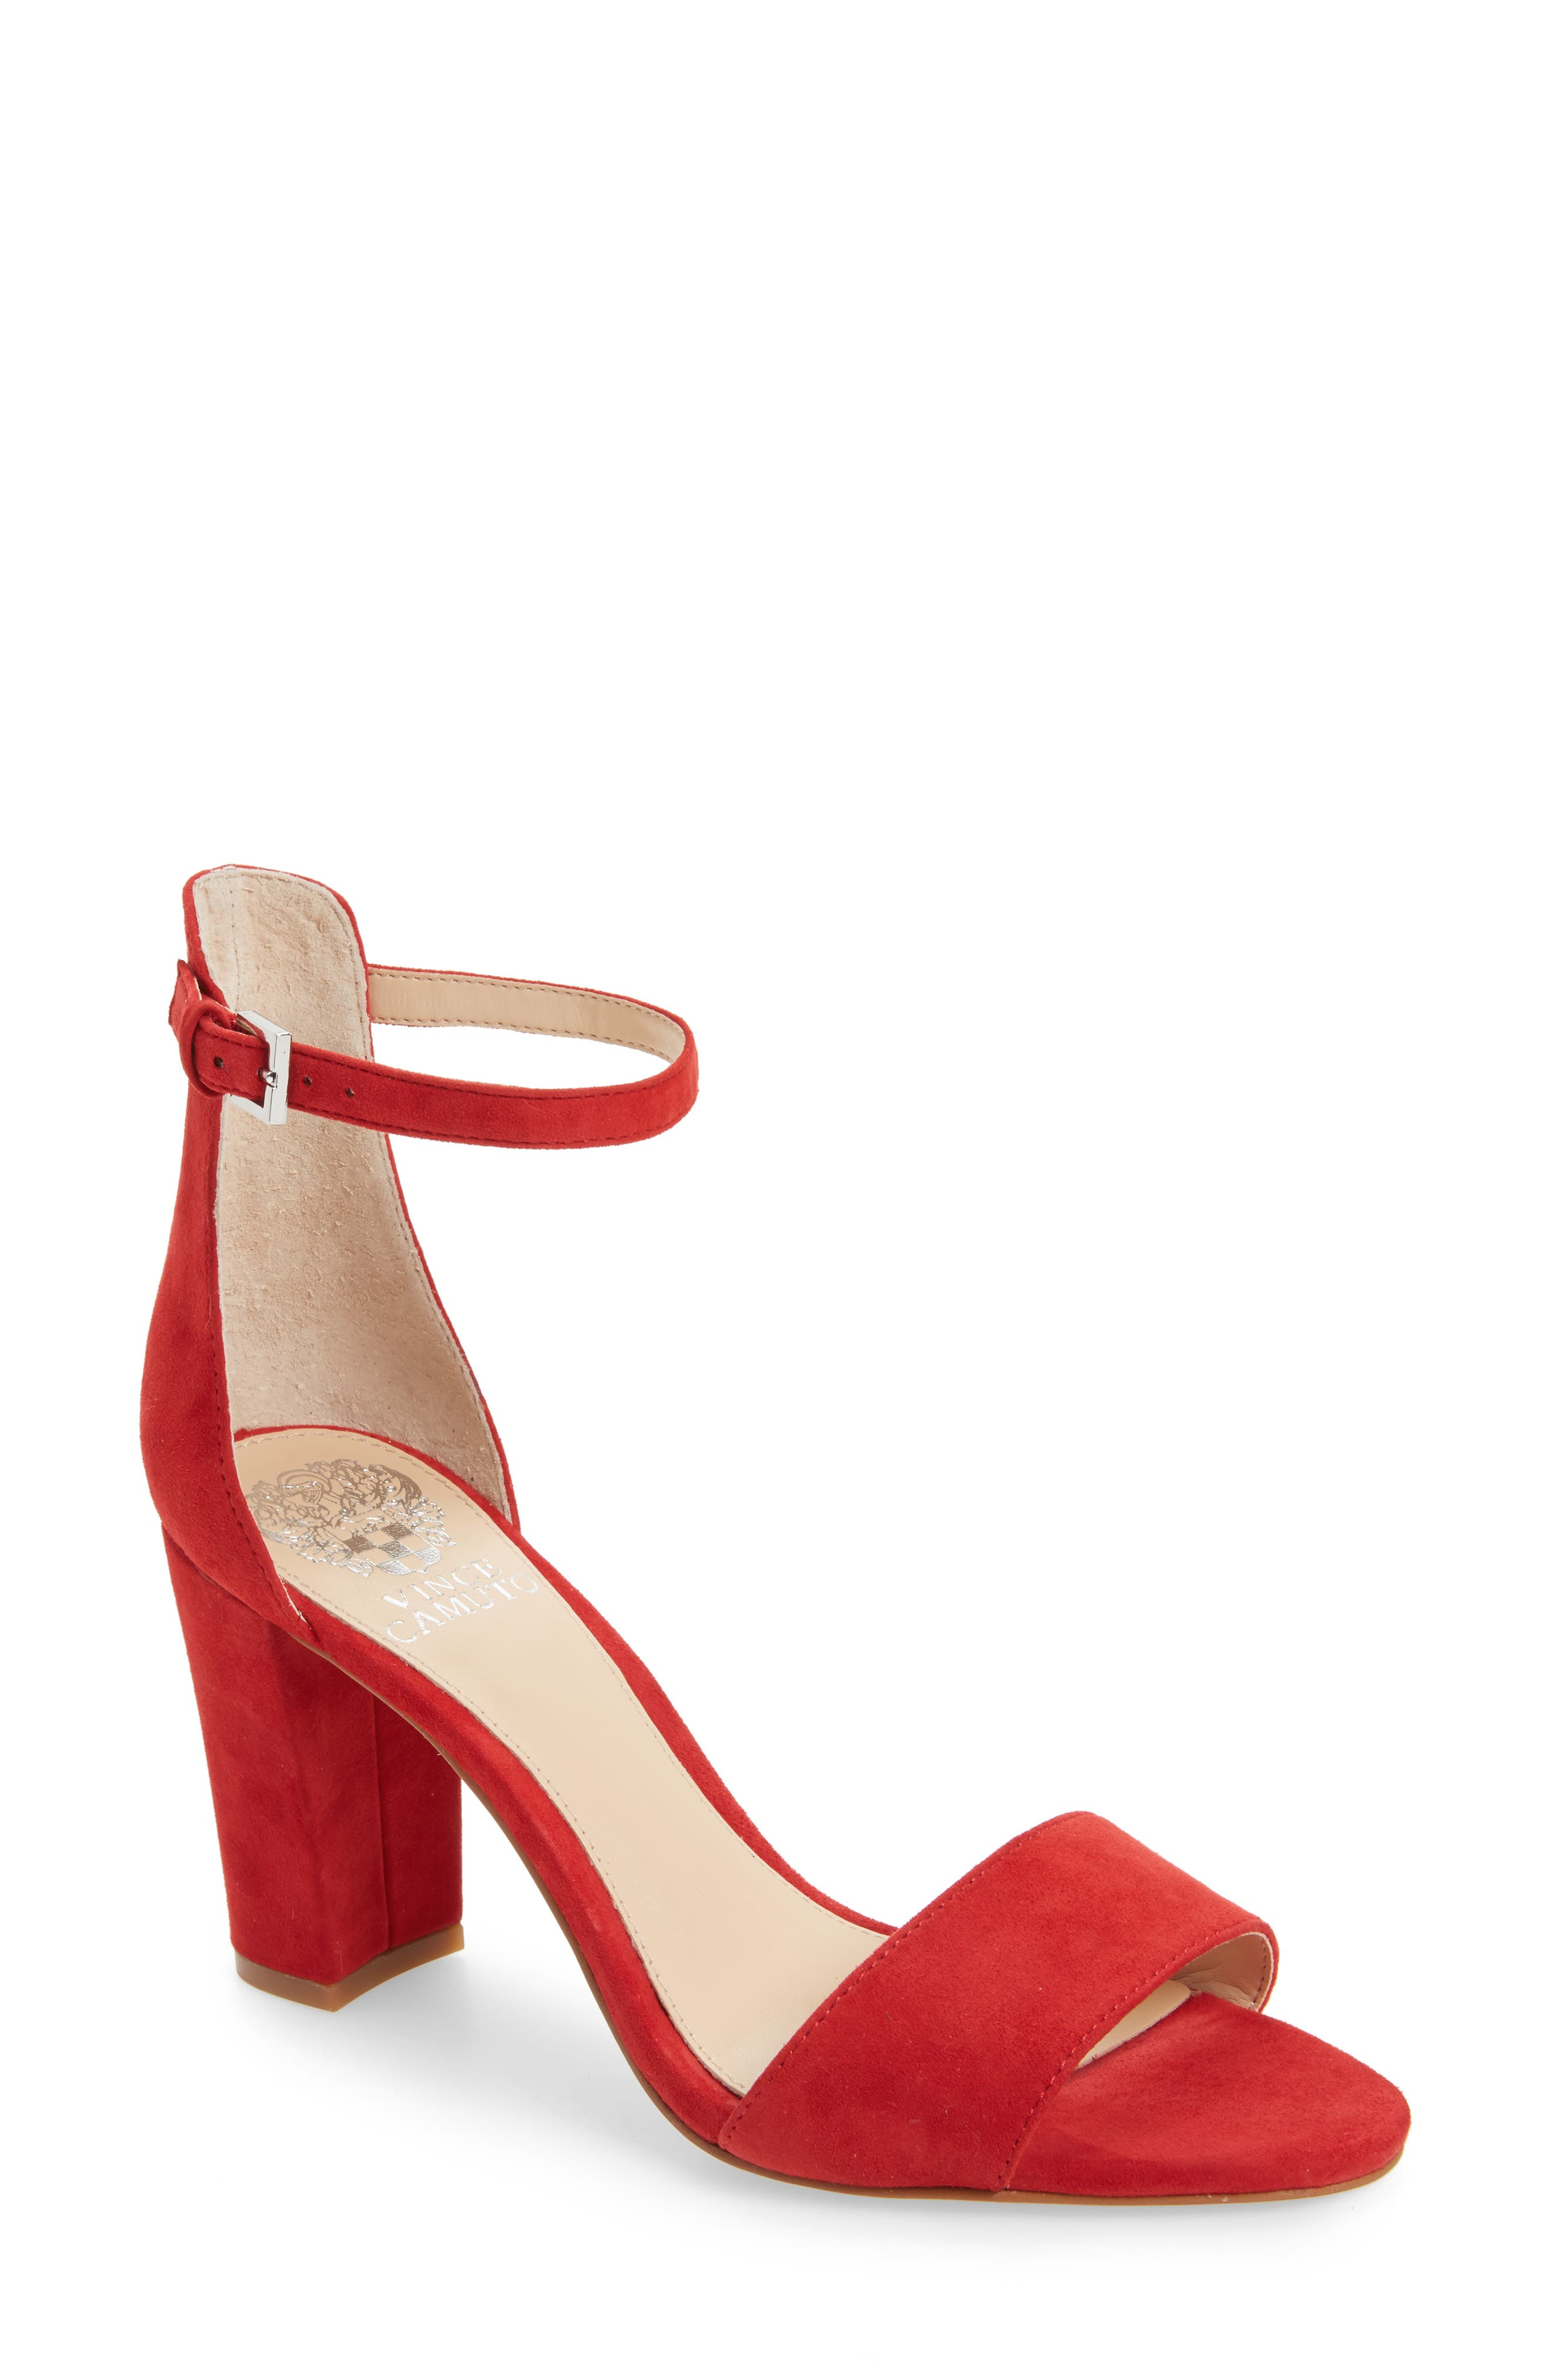 Red Heel Shoes Yj3wMmO1